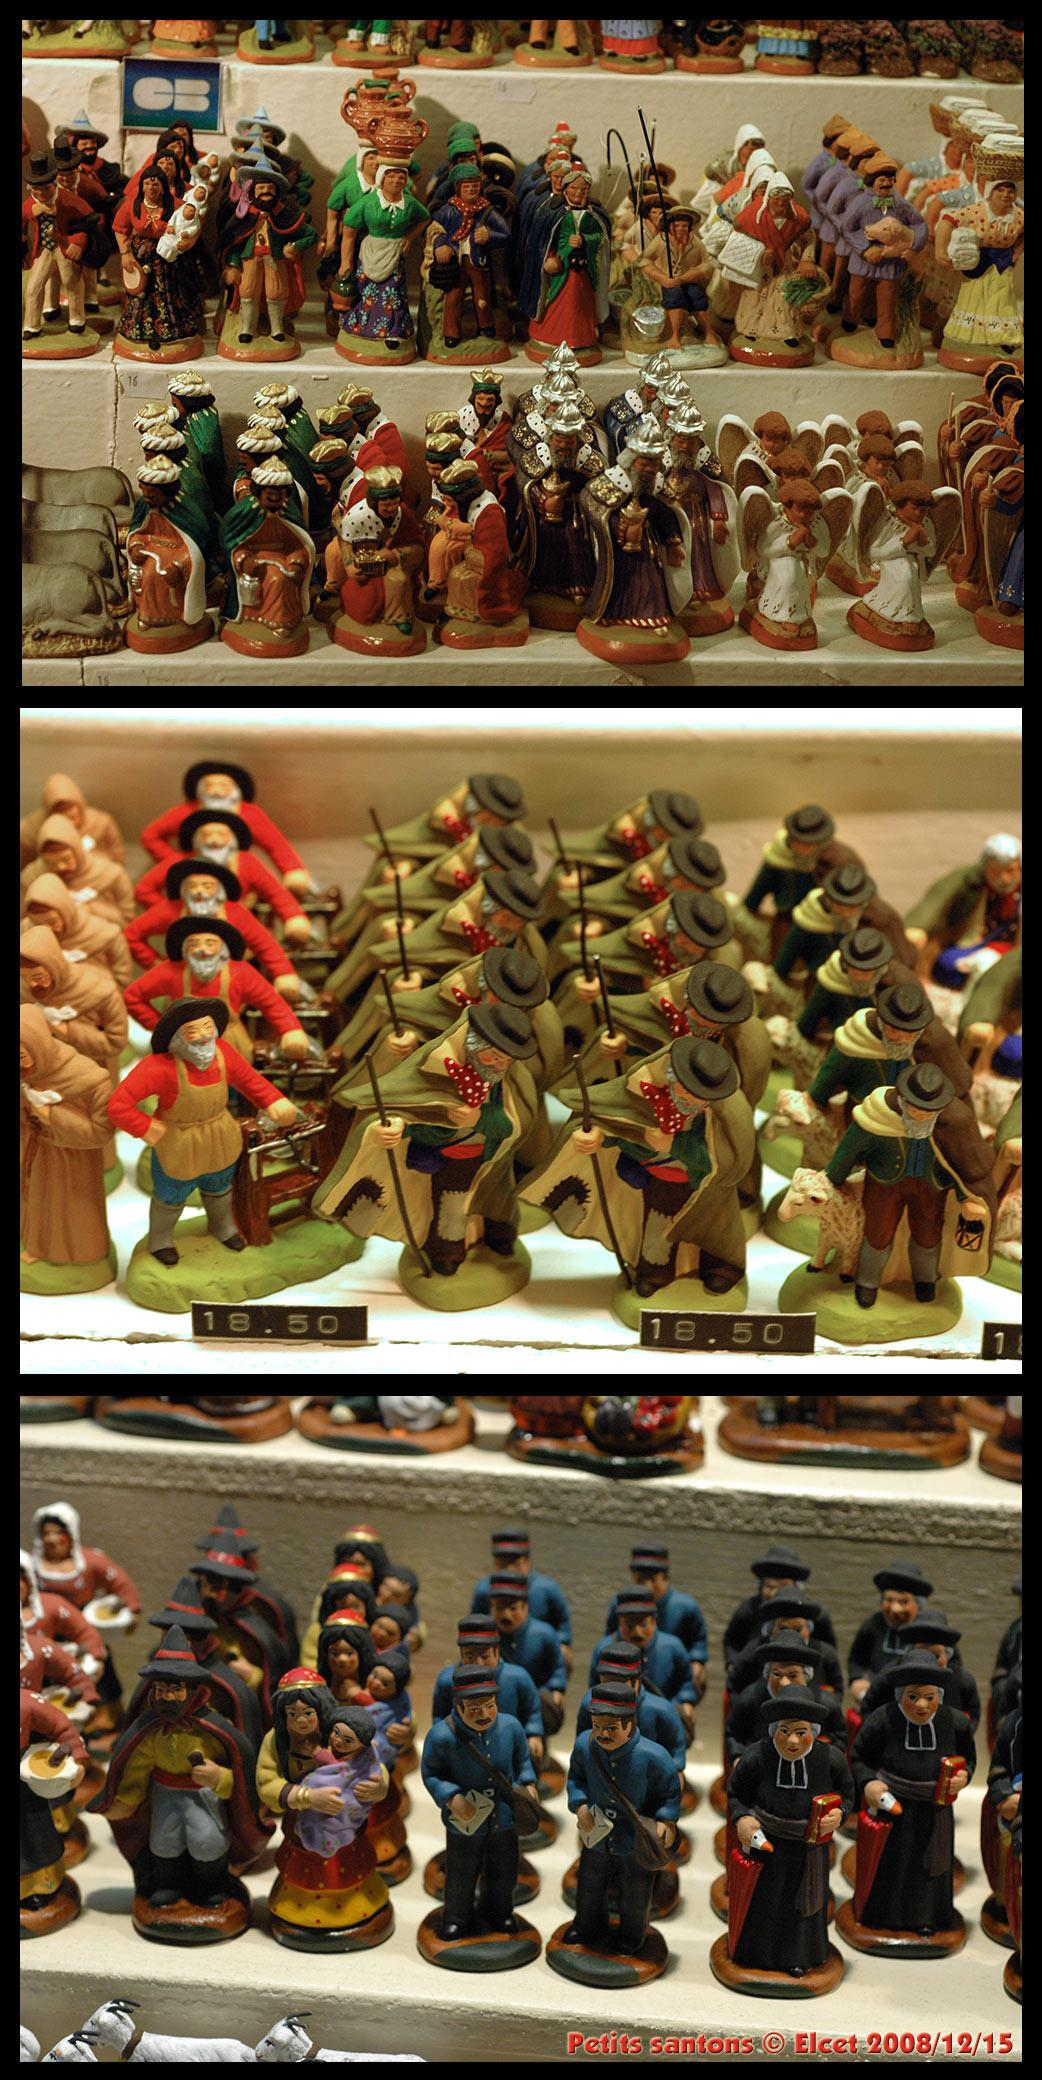 Little santons (Christmas statues) by Elcet